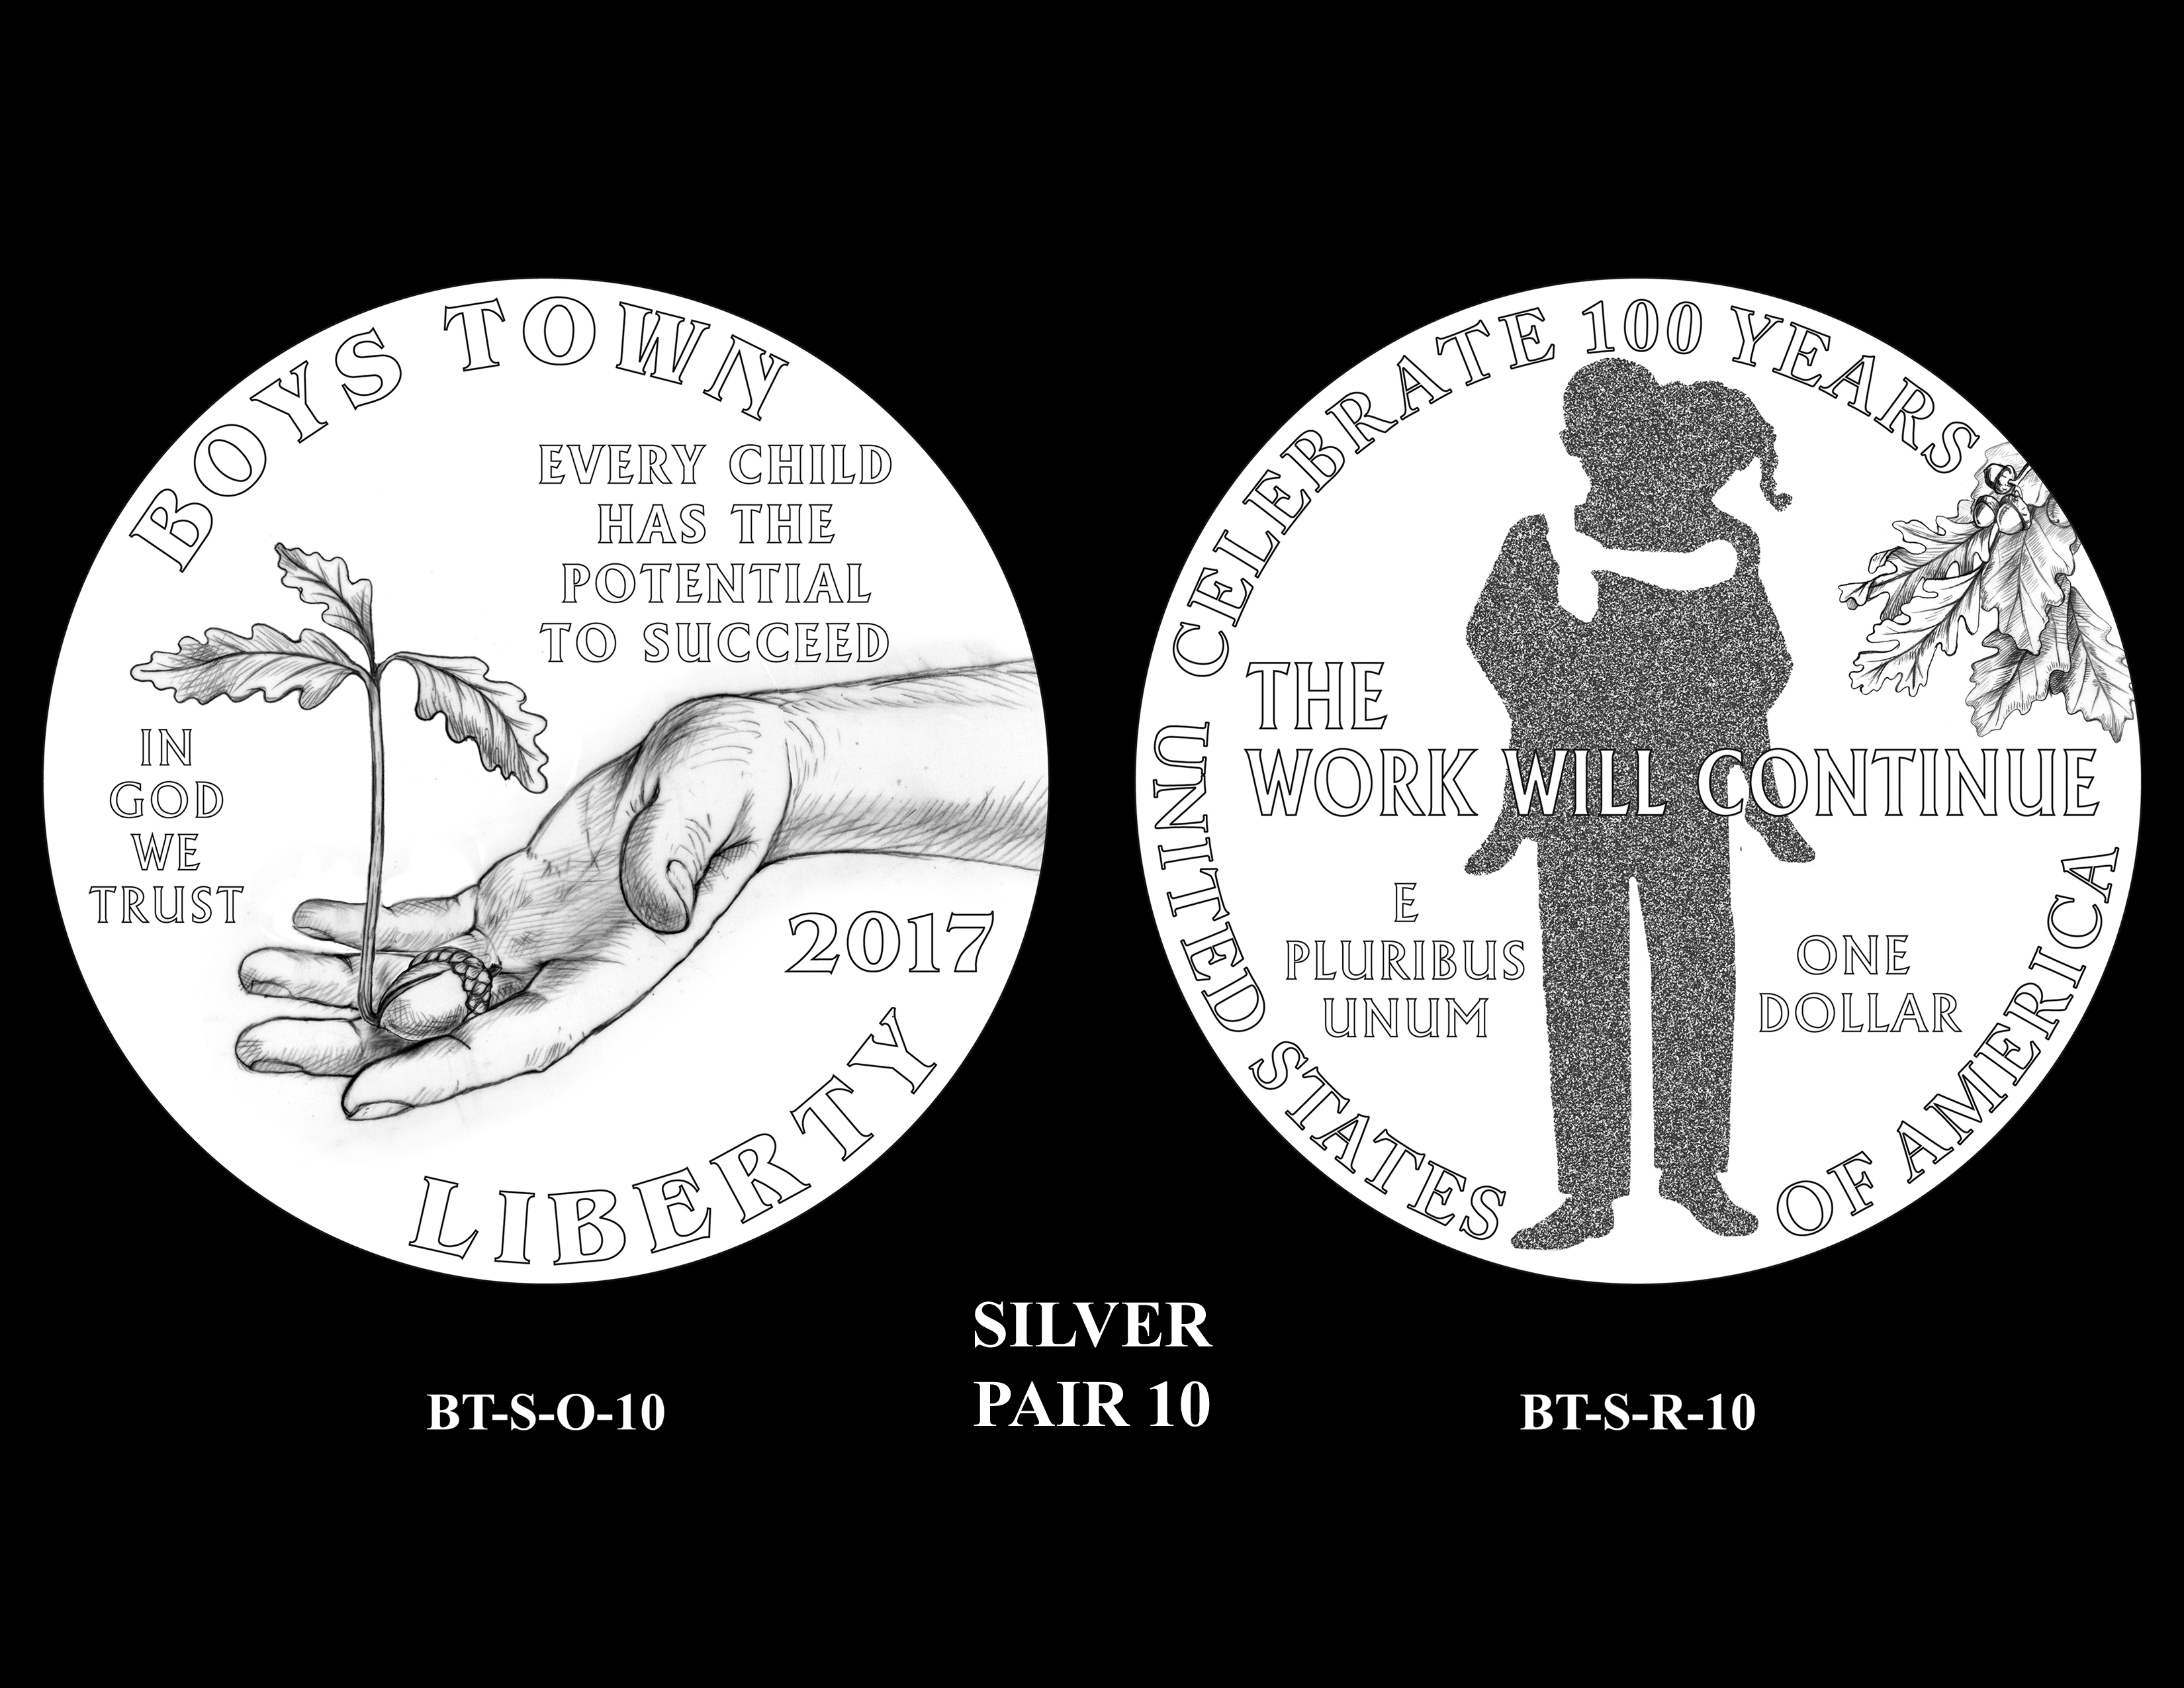 Silver-Pair-10 -- 2017 Boystown Centennial Commemorative Coin  Program